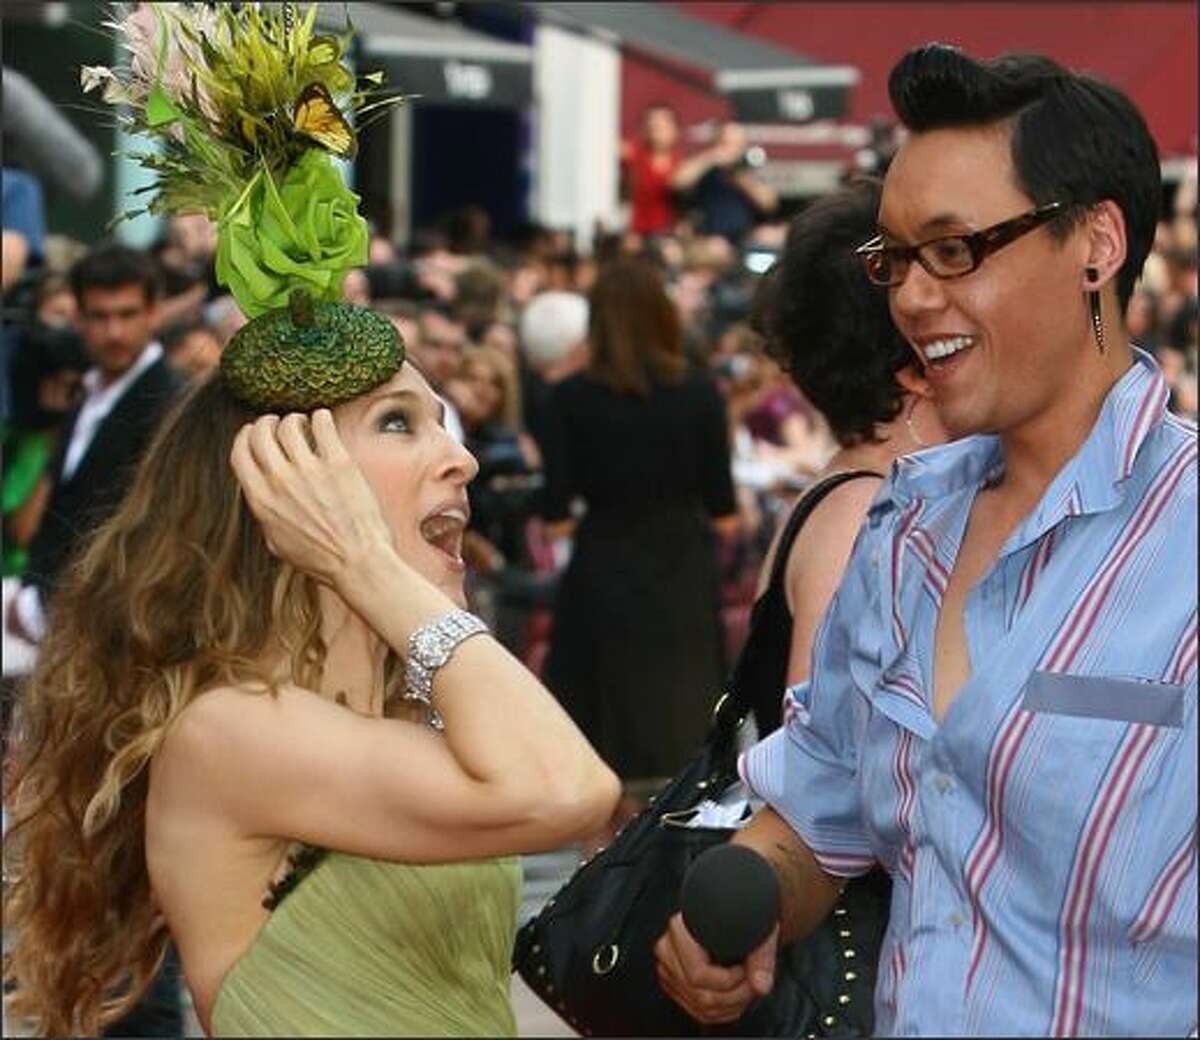 Actress Sarah Jessica Parker is interviewed by Gok Wan as she attends the world premiere of